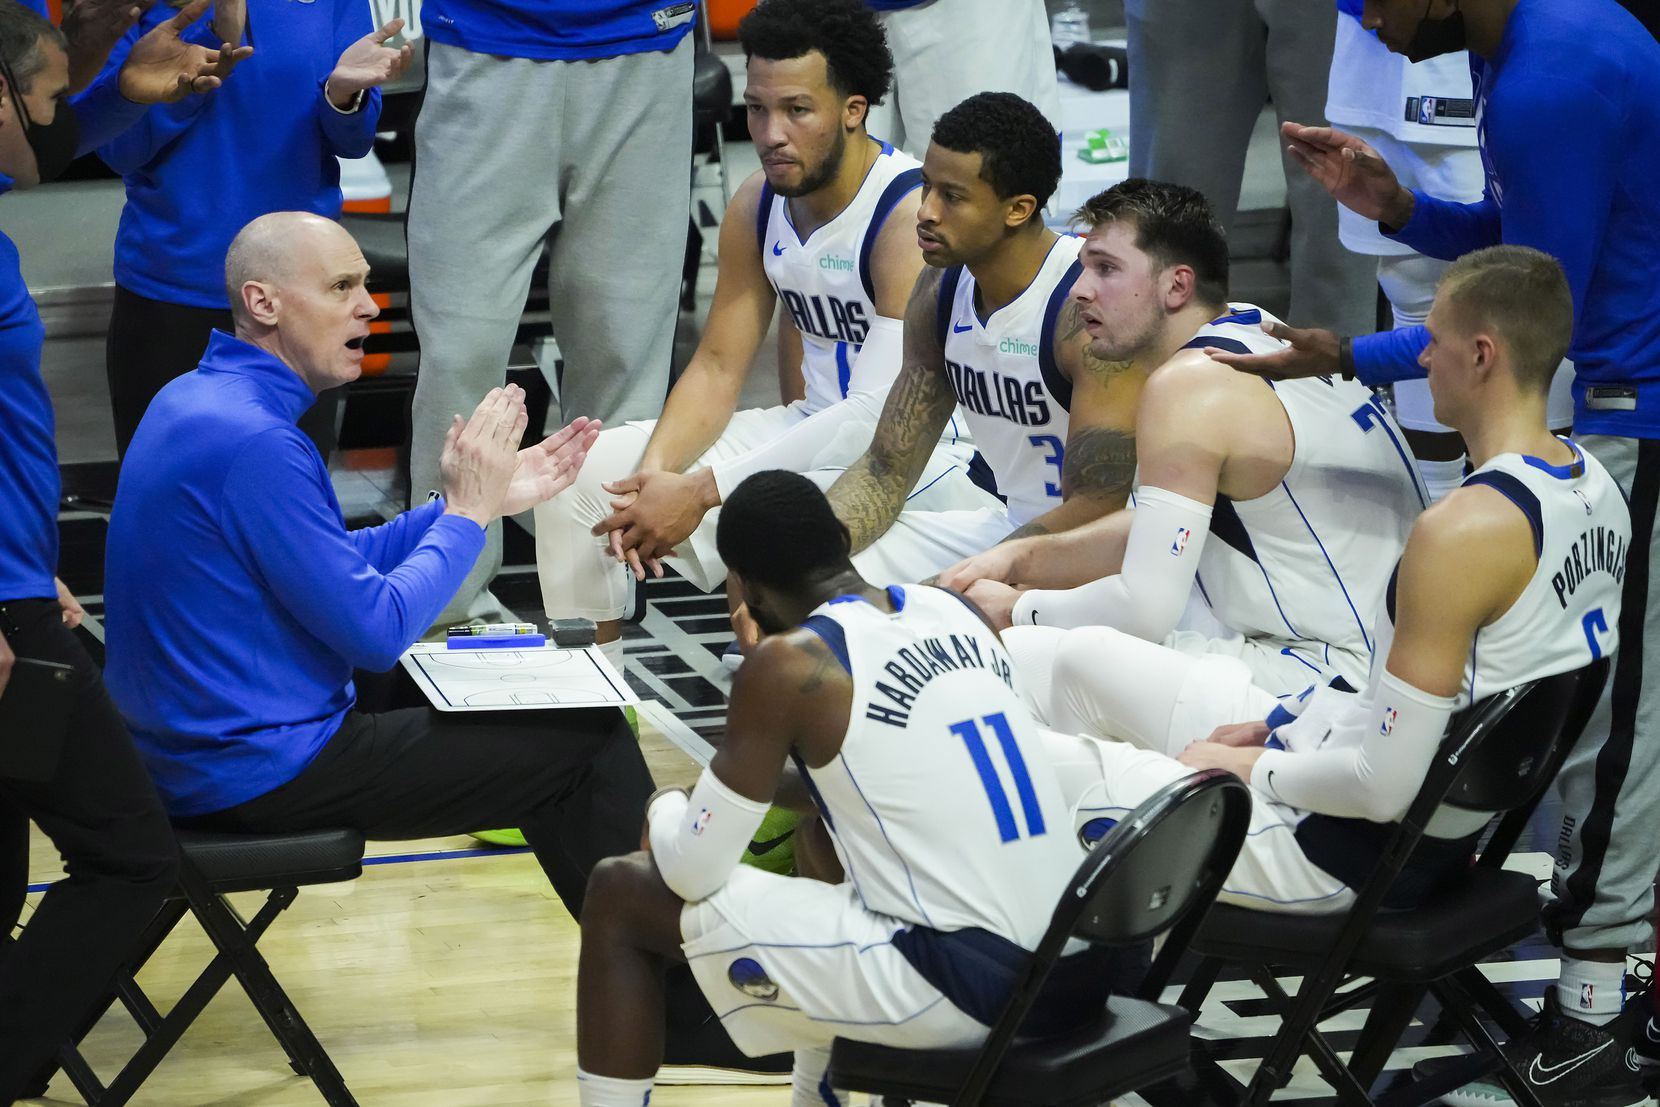 Dallas Mavericks head coach Rick Carlisle (left) encourages his players (from top), guard Jalen Brunson (13), guard Trey Burke (3), guard Luka Doncic (77), center Kristaps Porzingis (6) and forward Tim Hardaway Jr. (11) during a timeout in the fourth quarter of loss to the LA Clippers in Game 7 of an NBA playoff series at the Staples Center on Sunday, June 6, 2021, in Los Angeles.